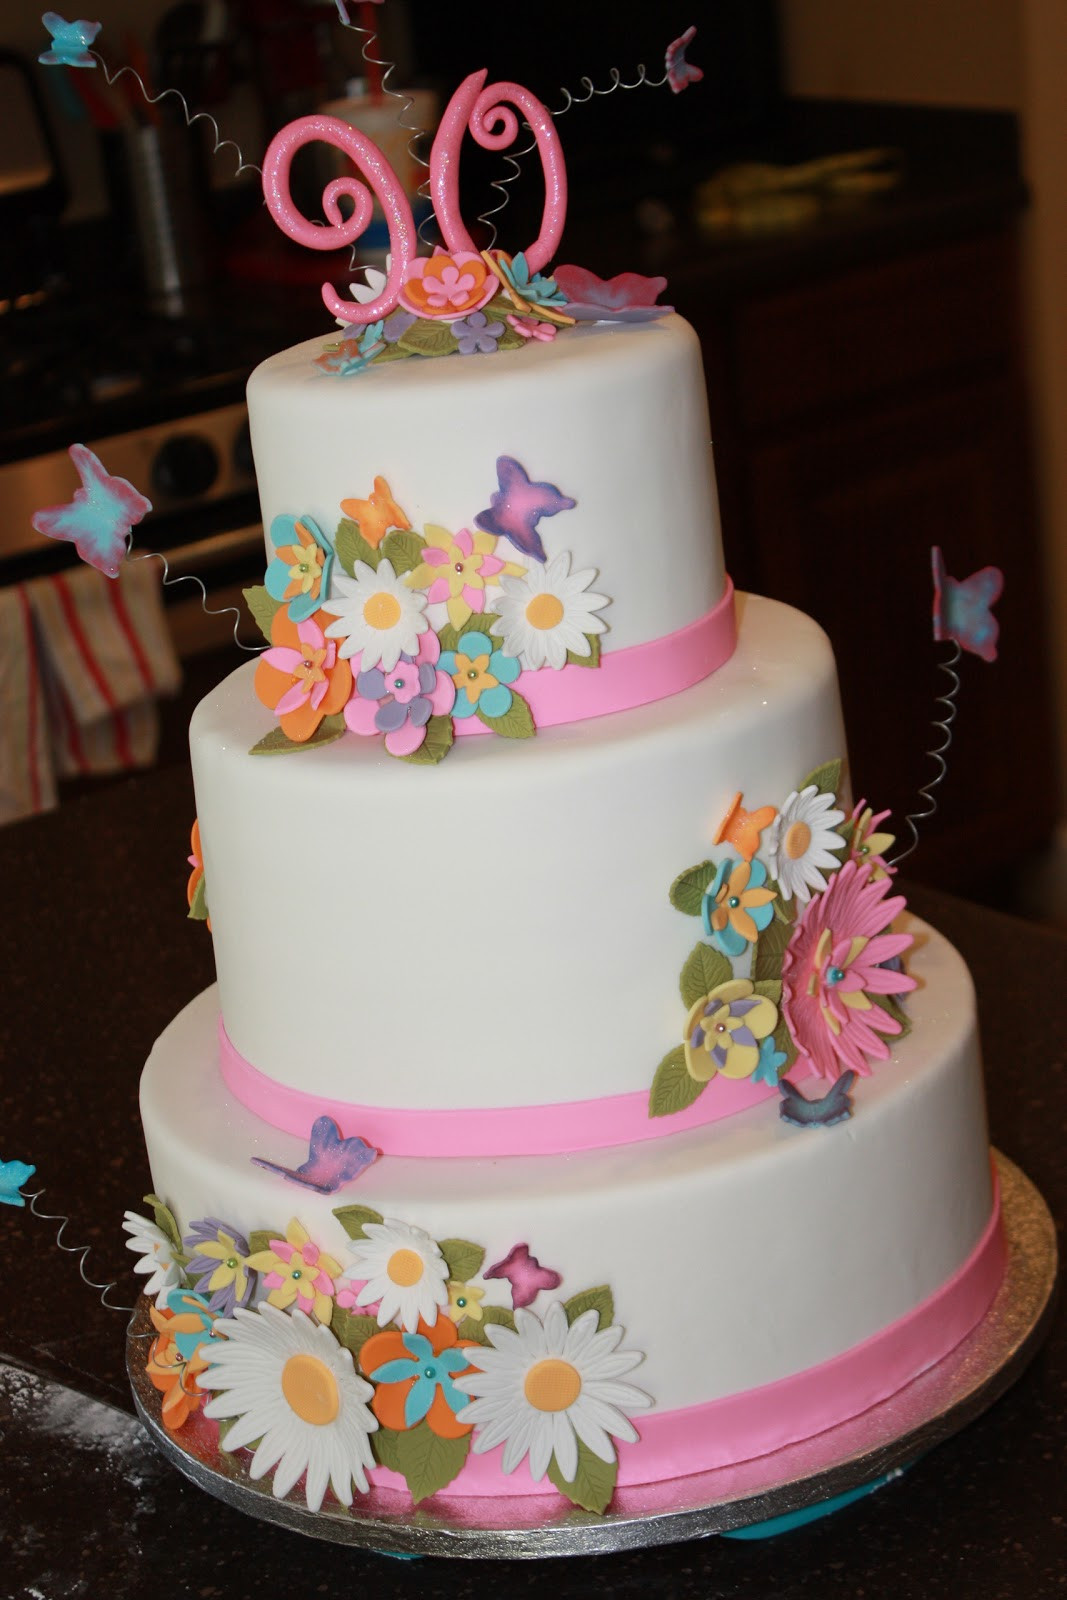 90Th Birthday Cake  The Good Apple Flowers and Butterflies 90th Birthday Cake